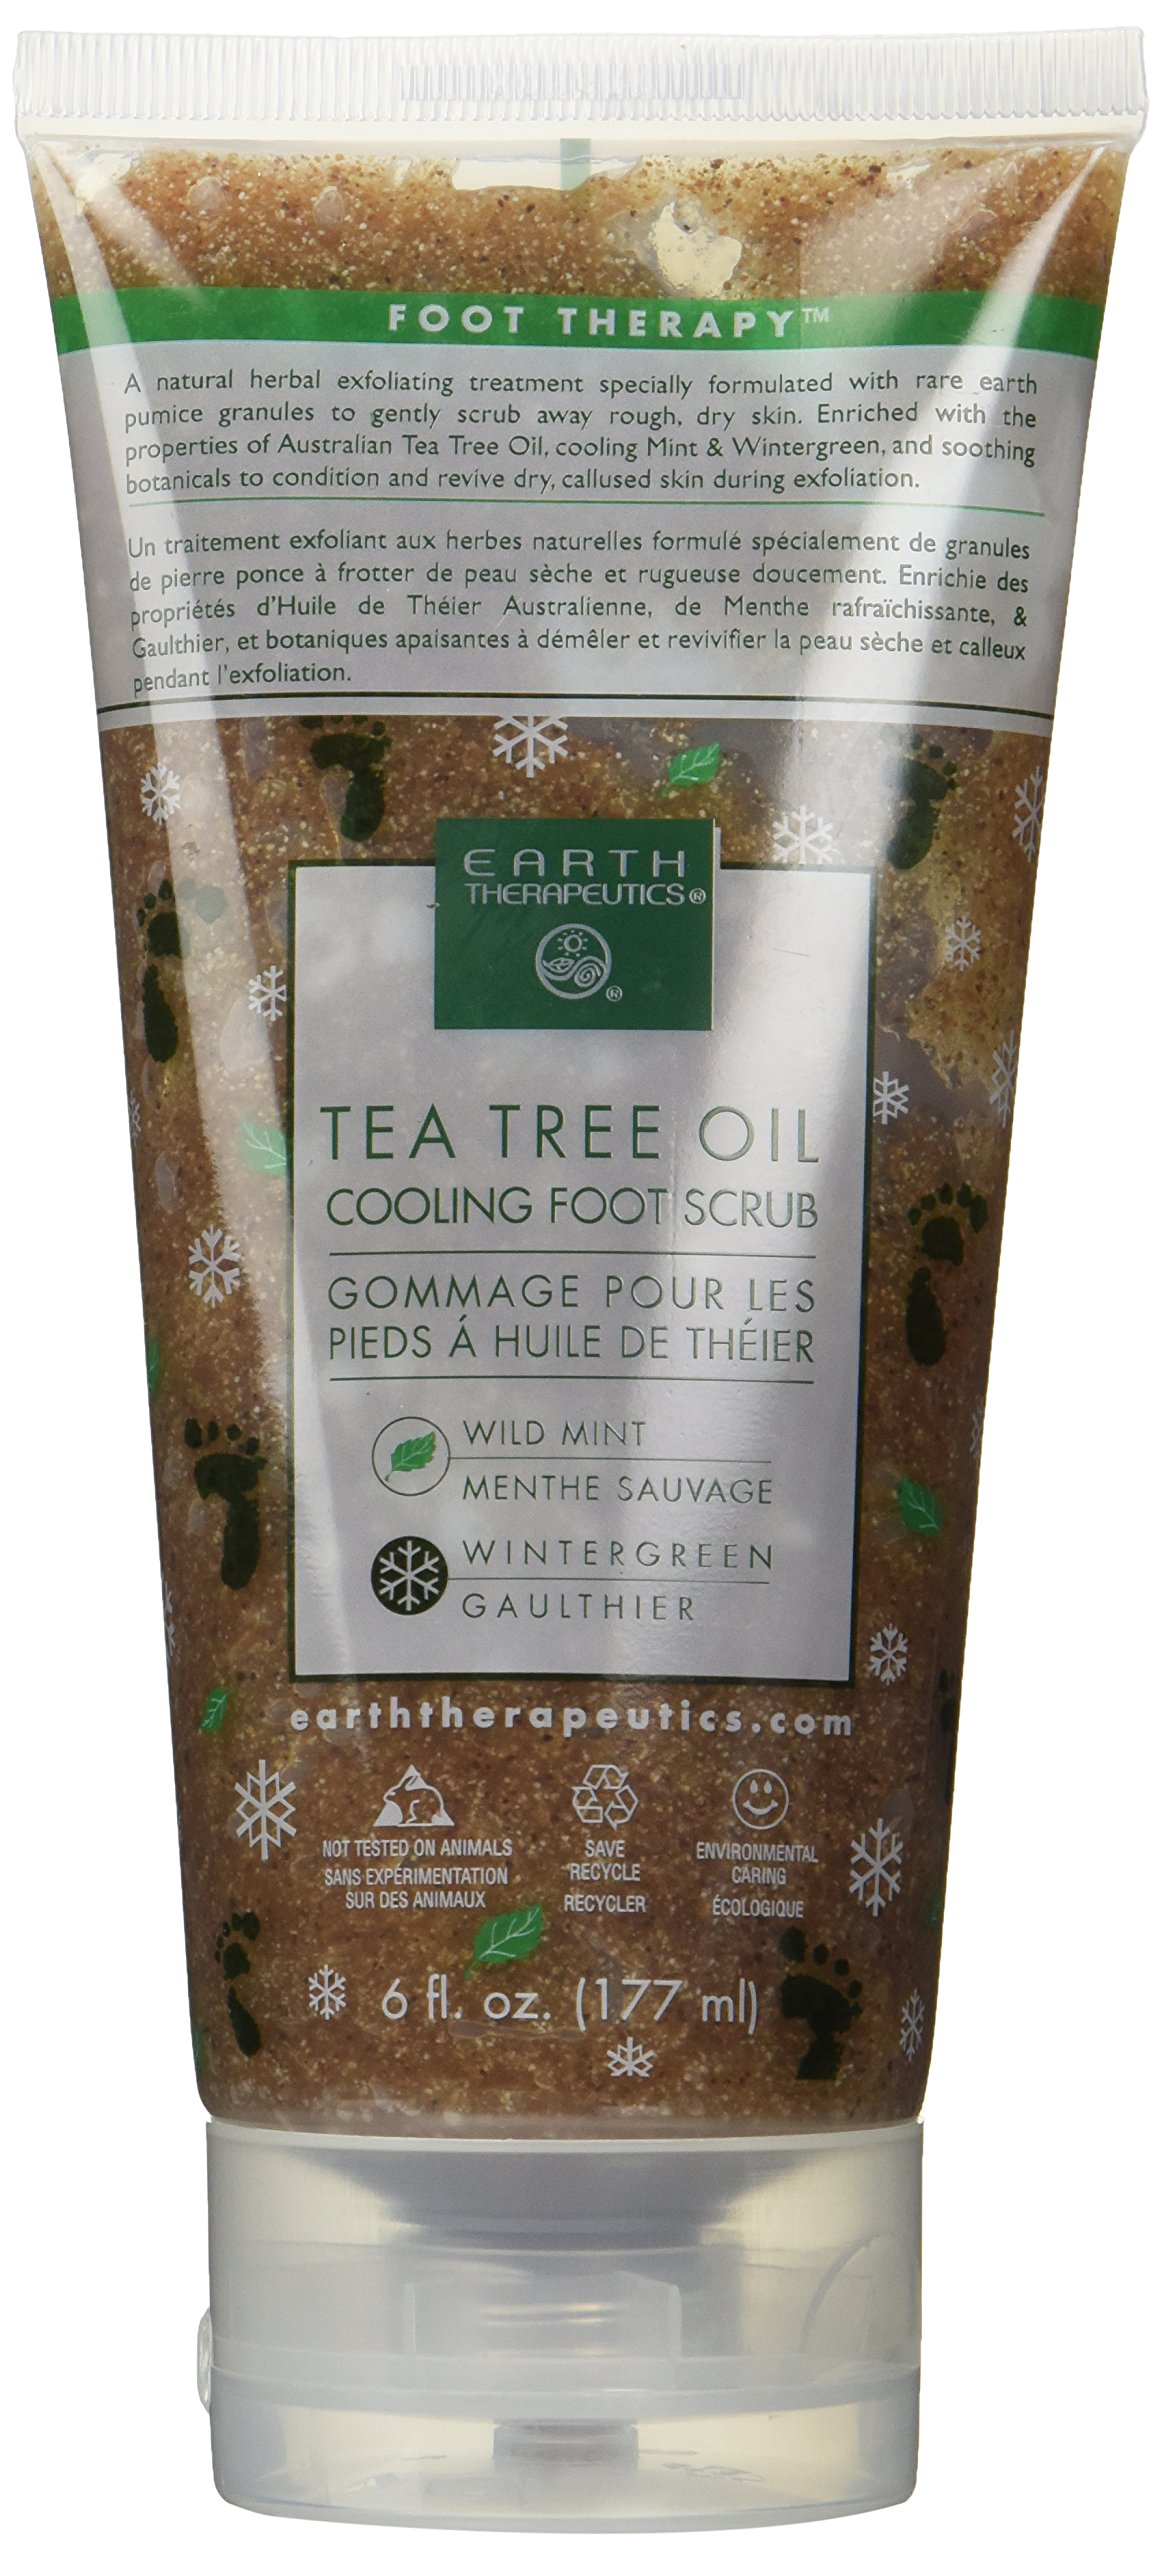 null - Tea Tree Oil Cooling Foot Scrub 6 fl. oz.